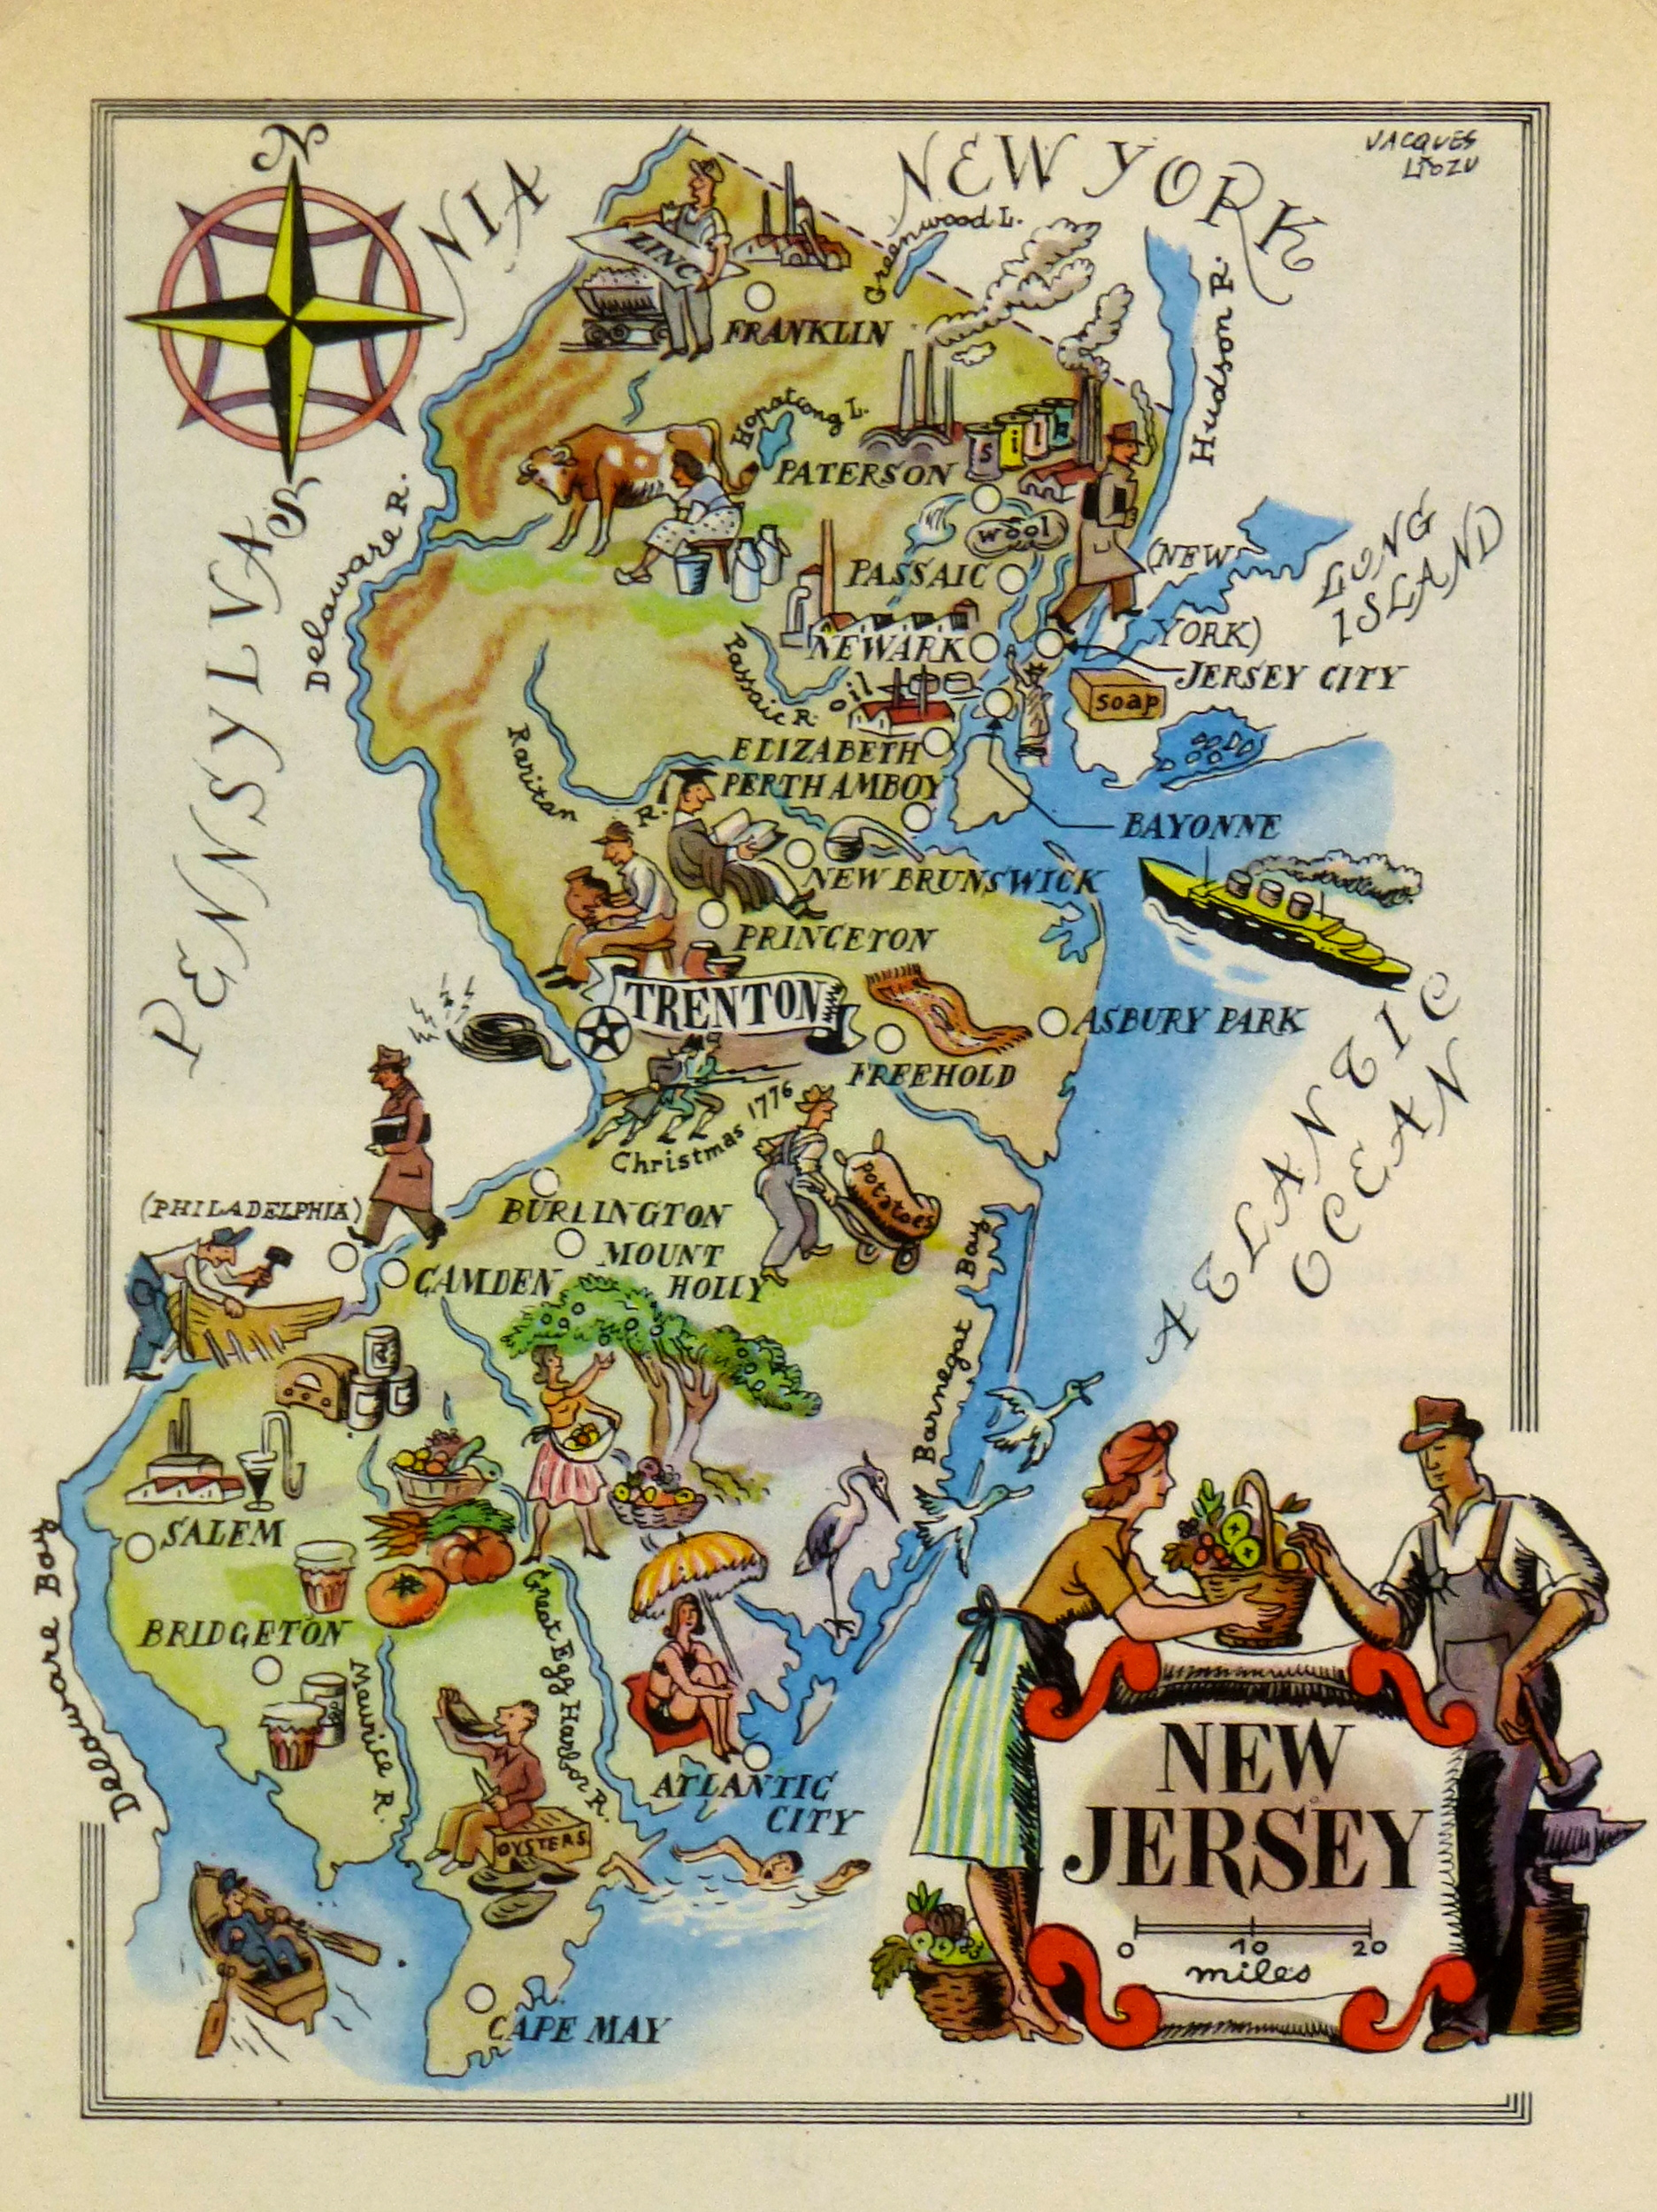 New Jersey Pictorial Map, 1946-main-6251K